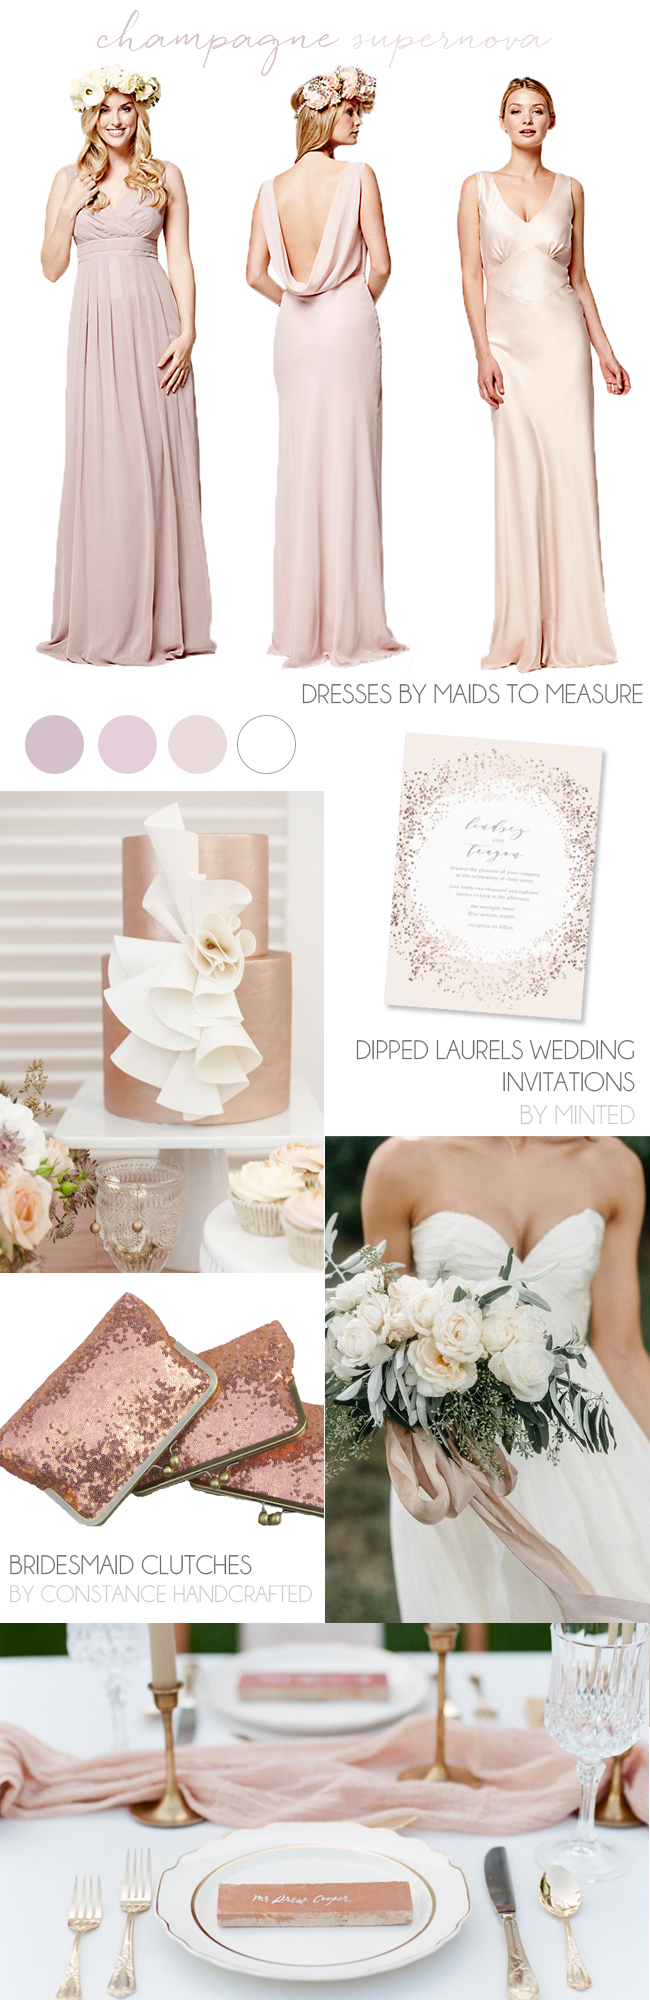 Mismatched Pastel Bridesmaid Dresses Done Right! | SouthBound Bride